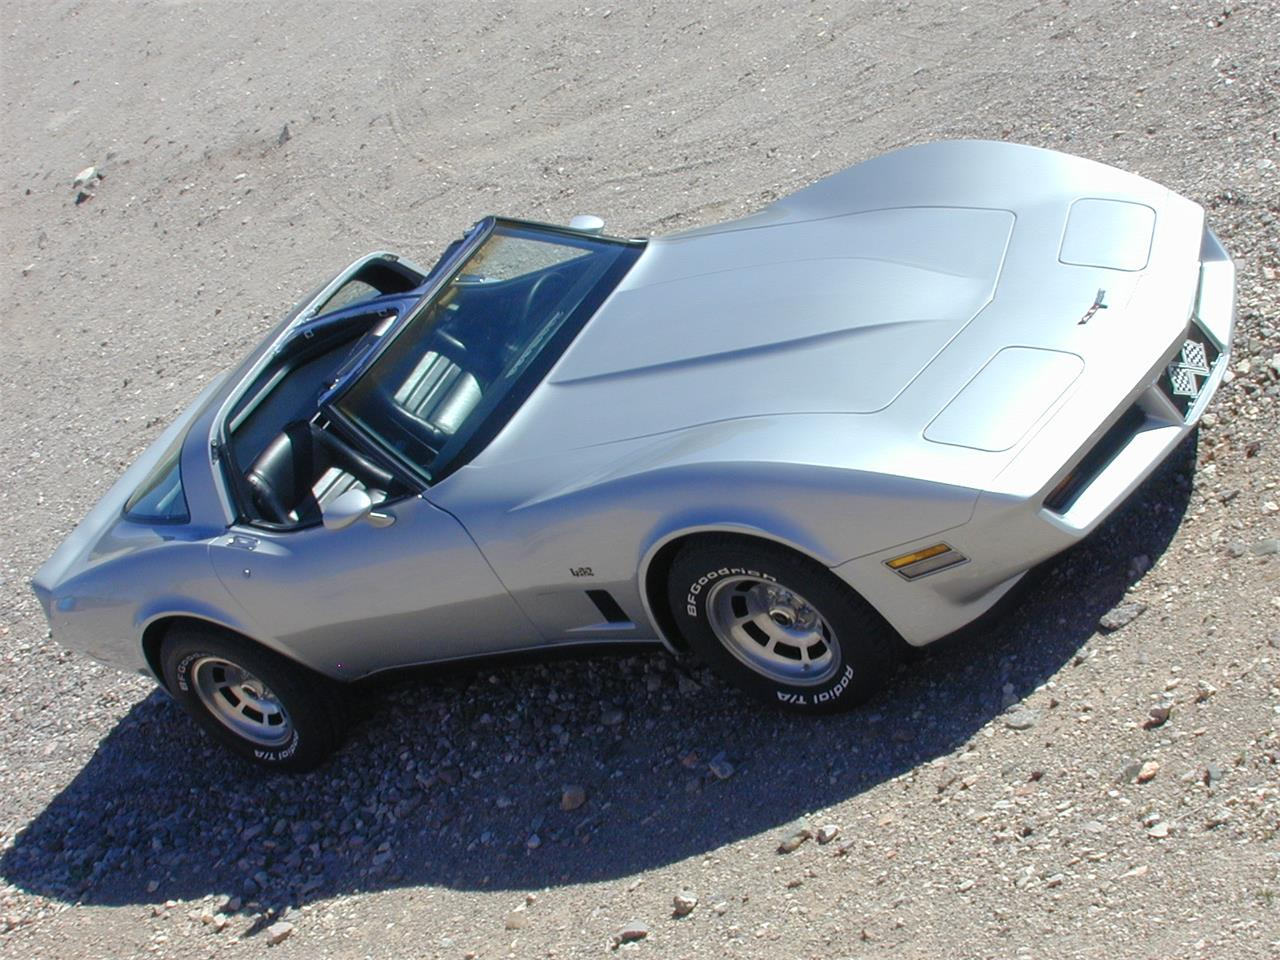 Large Picture of '80 Chevrolet Corvette located in Laughlin Nevada - $18,500.00 - DR92